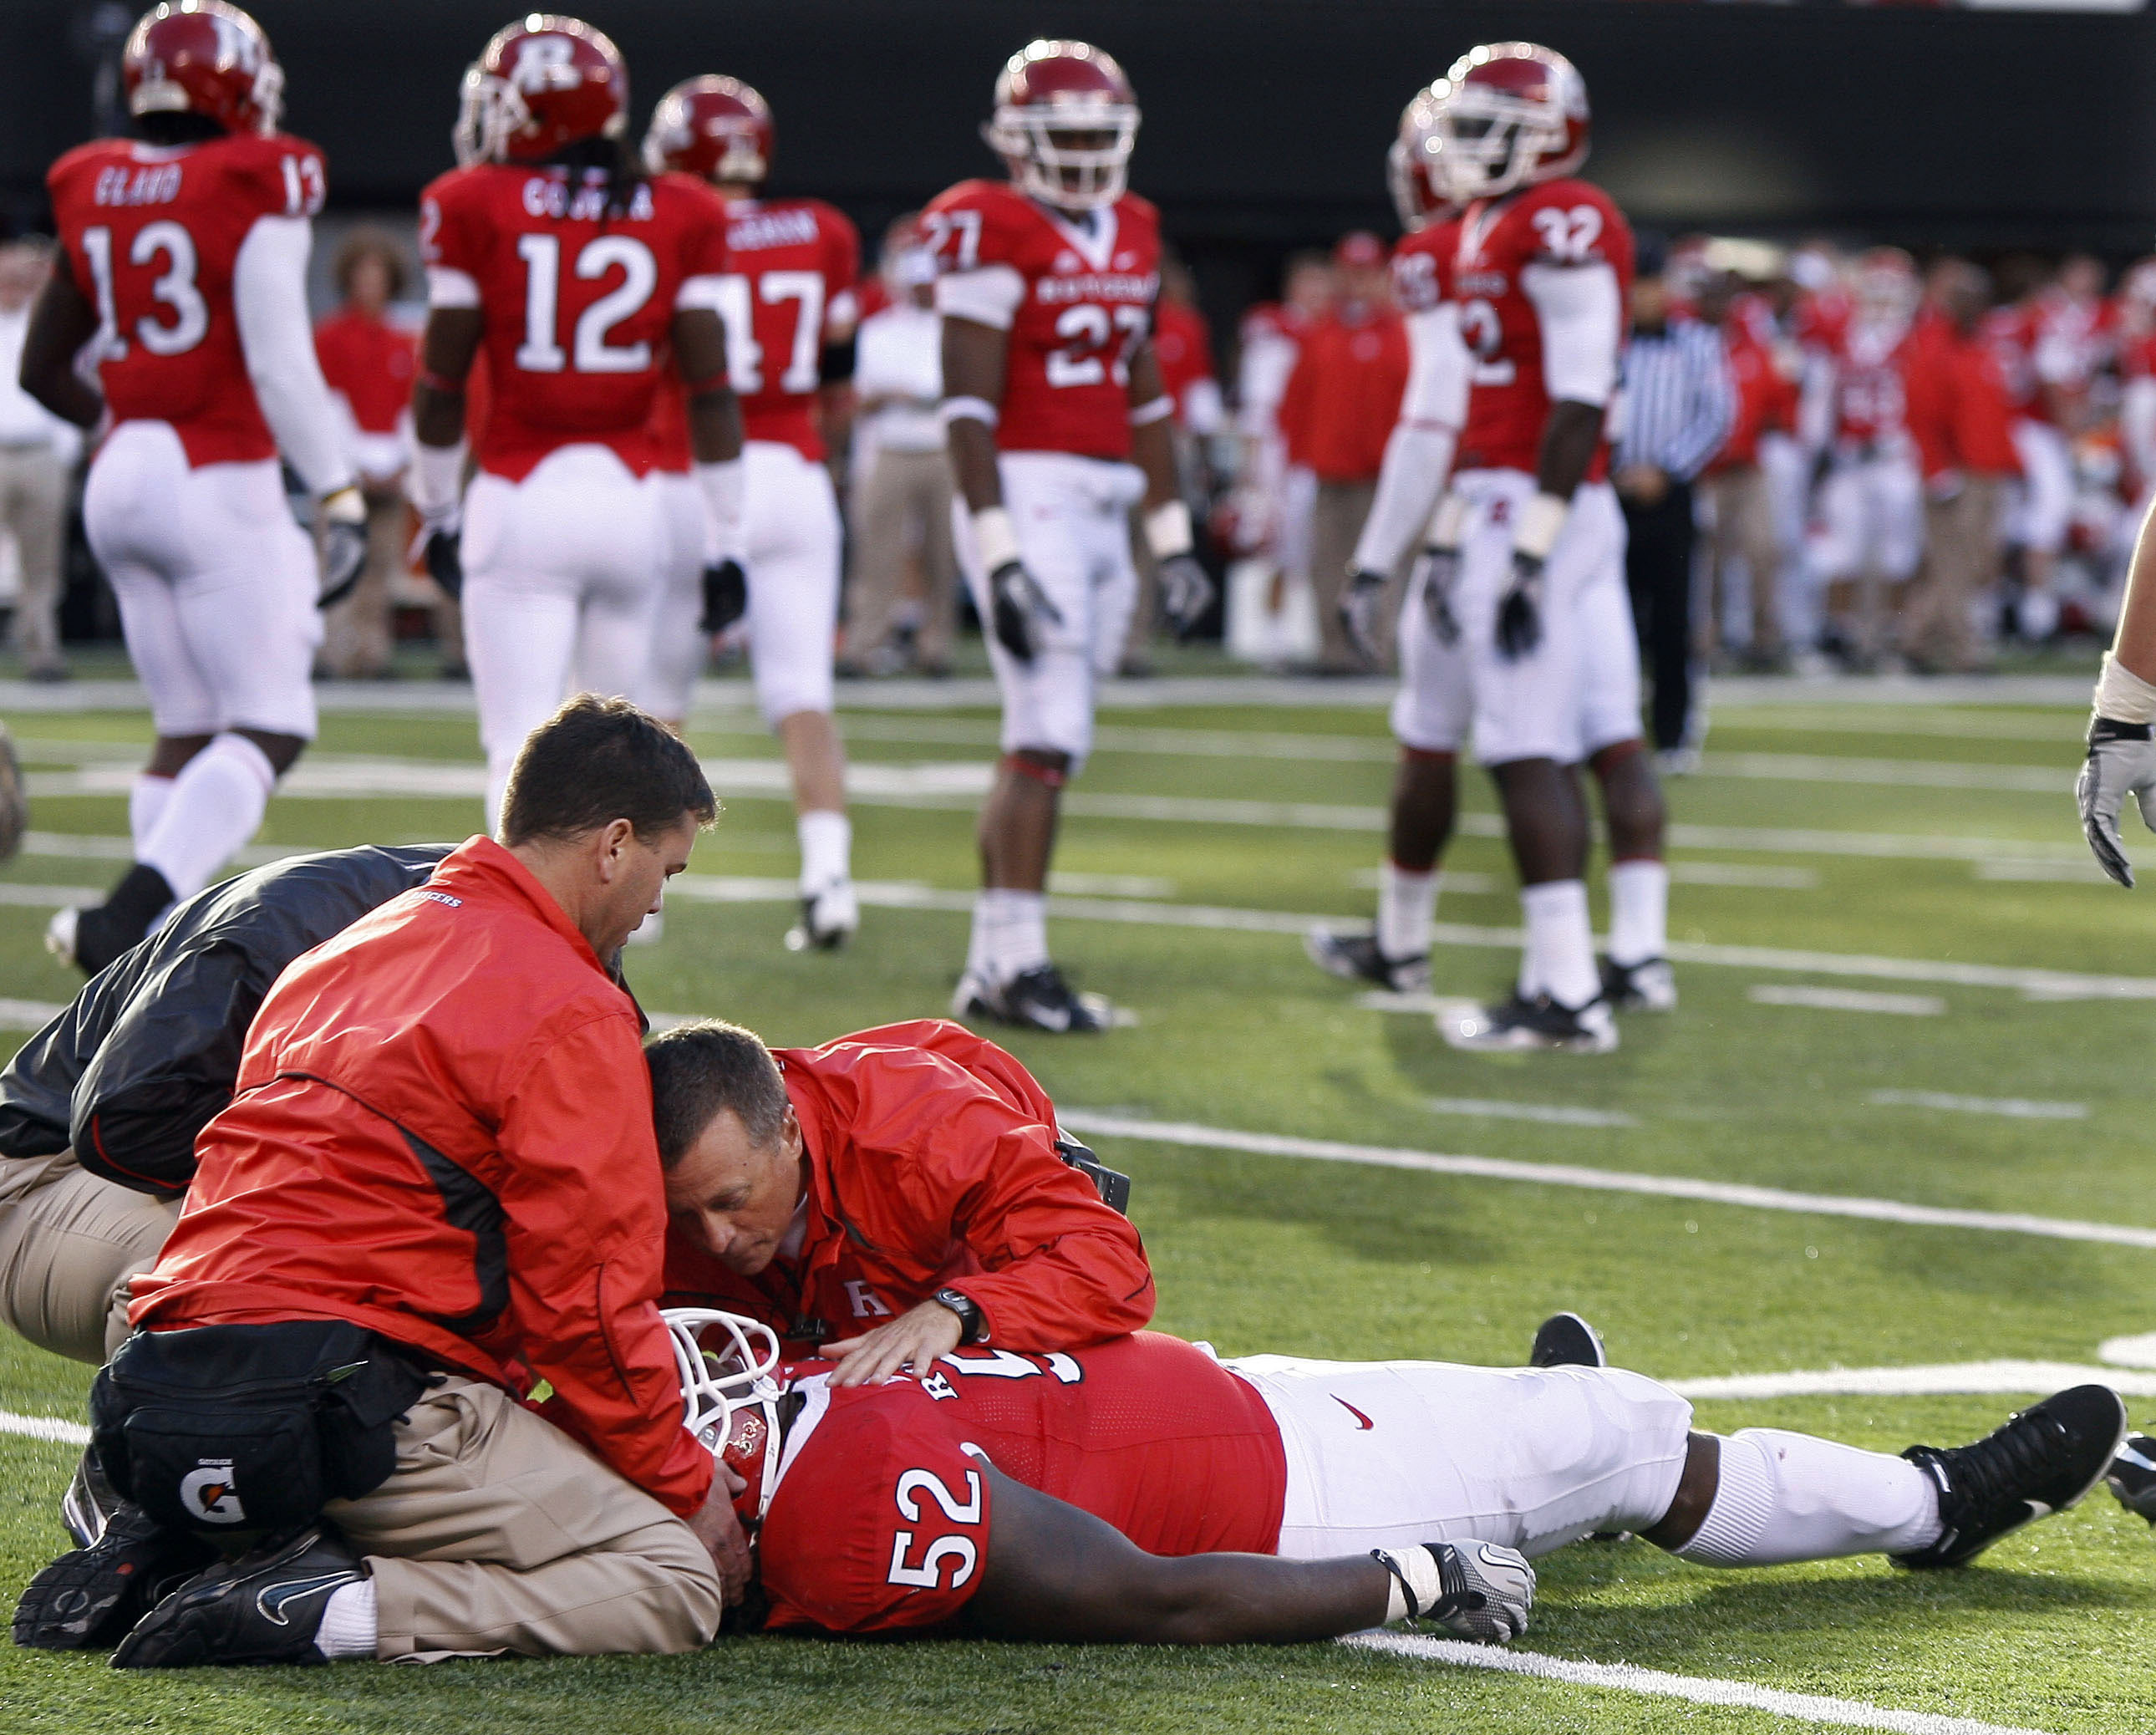 FILE - In this  Oct. 16, 2010,  file photo, Rutgers defensive tackle Eric LeGrand (52) is treated on the field after colliding with Army's Malcolm Brown while trying to make the tackle during the second half of an NCAA football game in East Rutherford, N.J. This Sunday will mark one year since LeGrand was paralyzed while making a tackle on a kick return against Army. The 21-year-old is wheelchair-bound, unable to move below his shoulders, but he still leads a full life and believes he will walk again.  (AP Photo/Mel Evans, File)